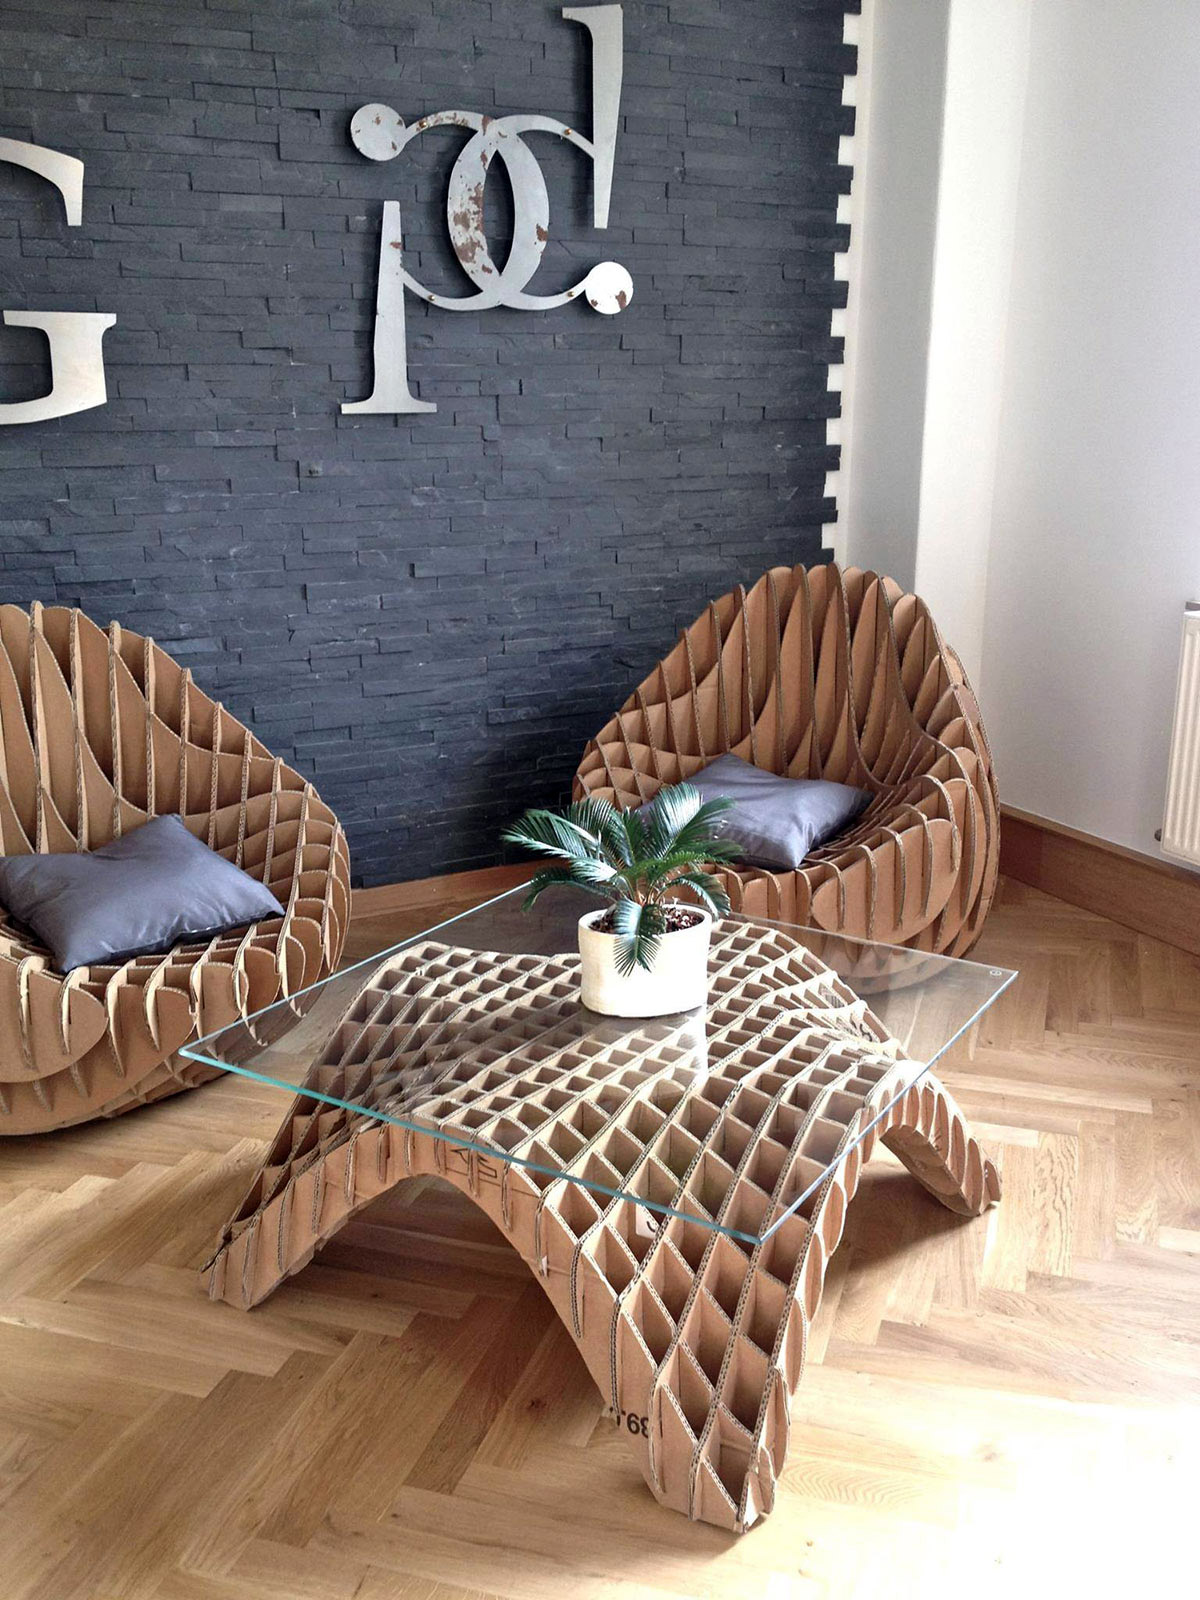 Unique Furniture Made of Recycled Cardboard – Adorable Home